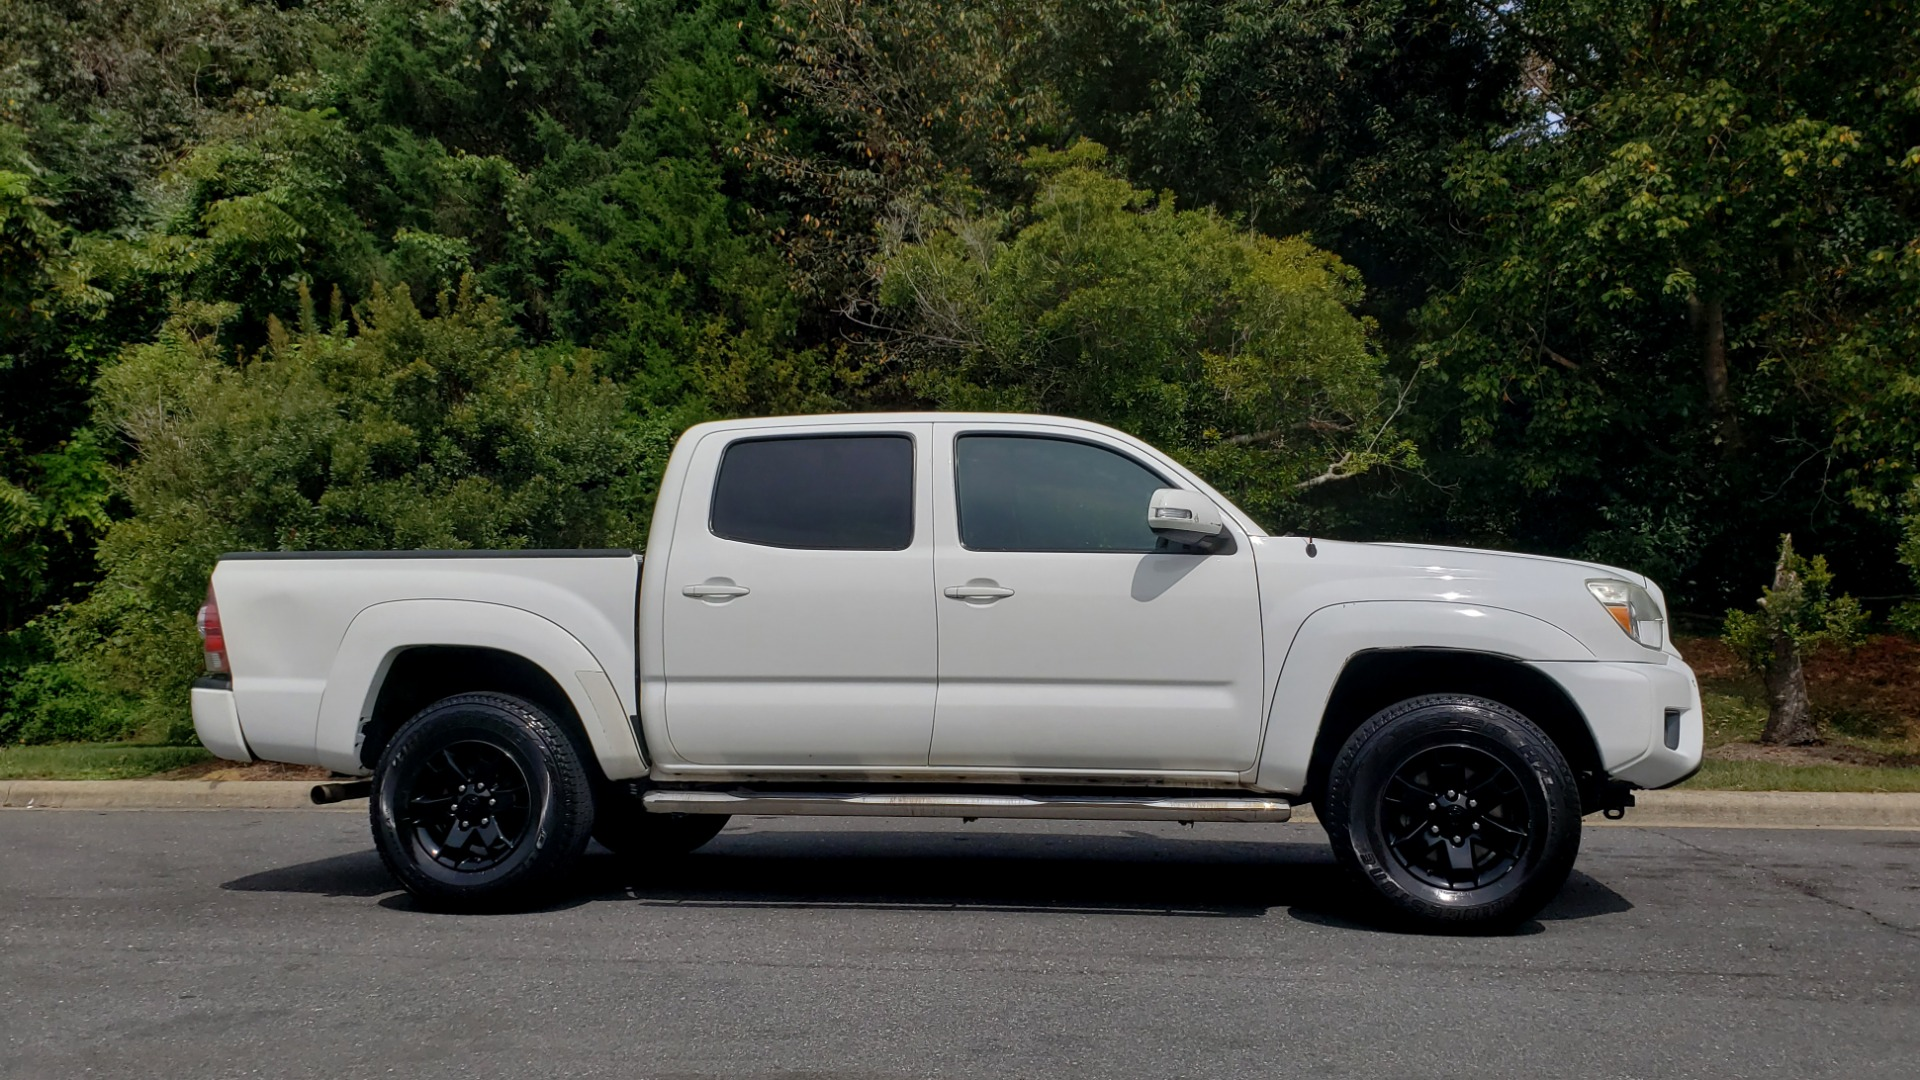 Used 2015 Toyota TACOMA PRERUNNER DOUBLE CAB/ 4-CYL / 4-SPD AUTO / SR PKG / CONV PKG for sale $15,995 at Formula Imports in Charlotte NC 28227 5